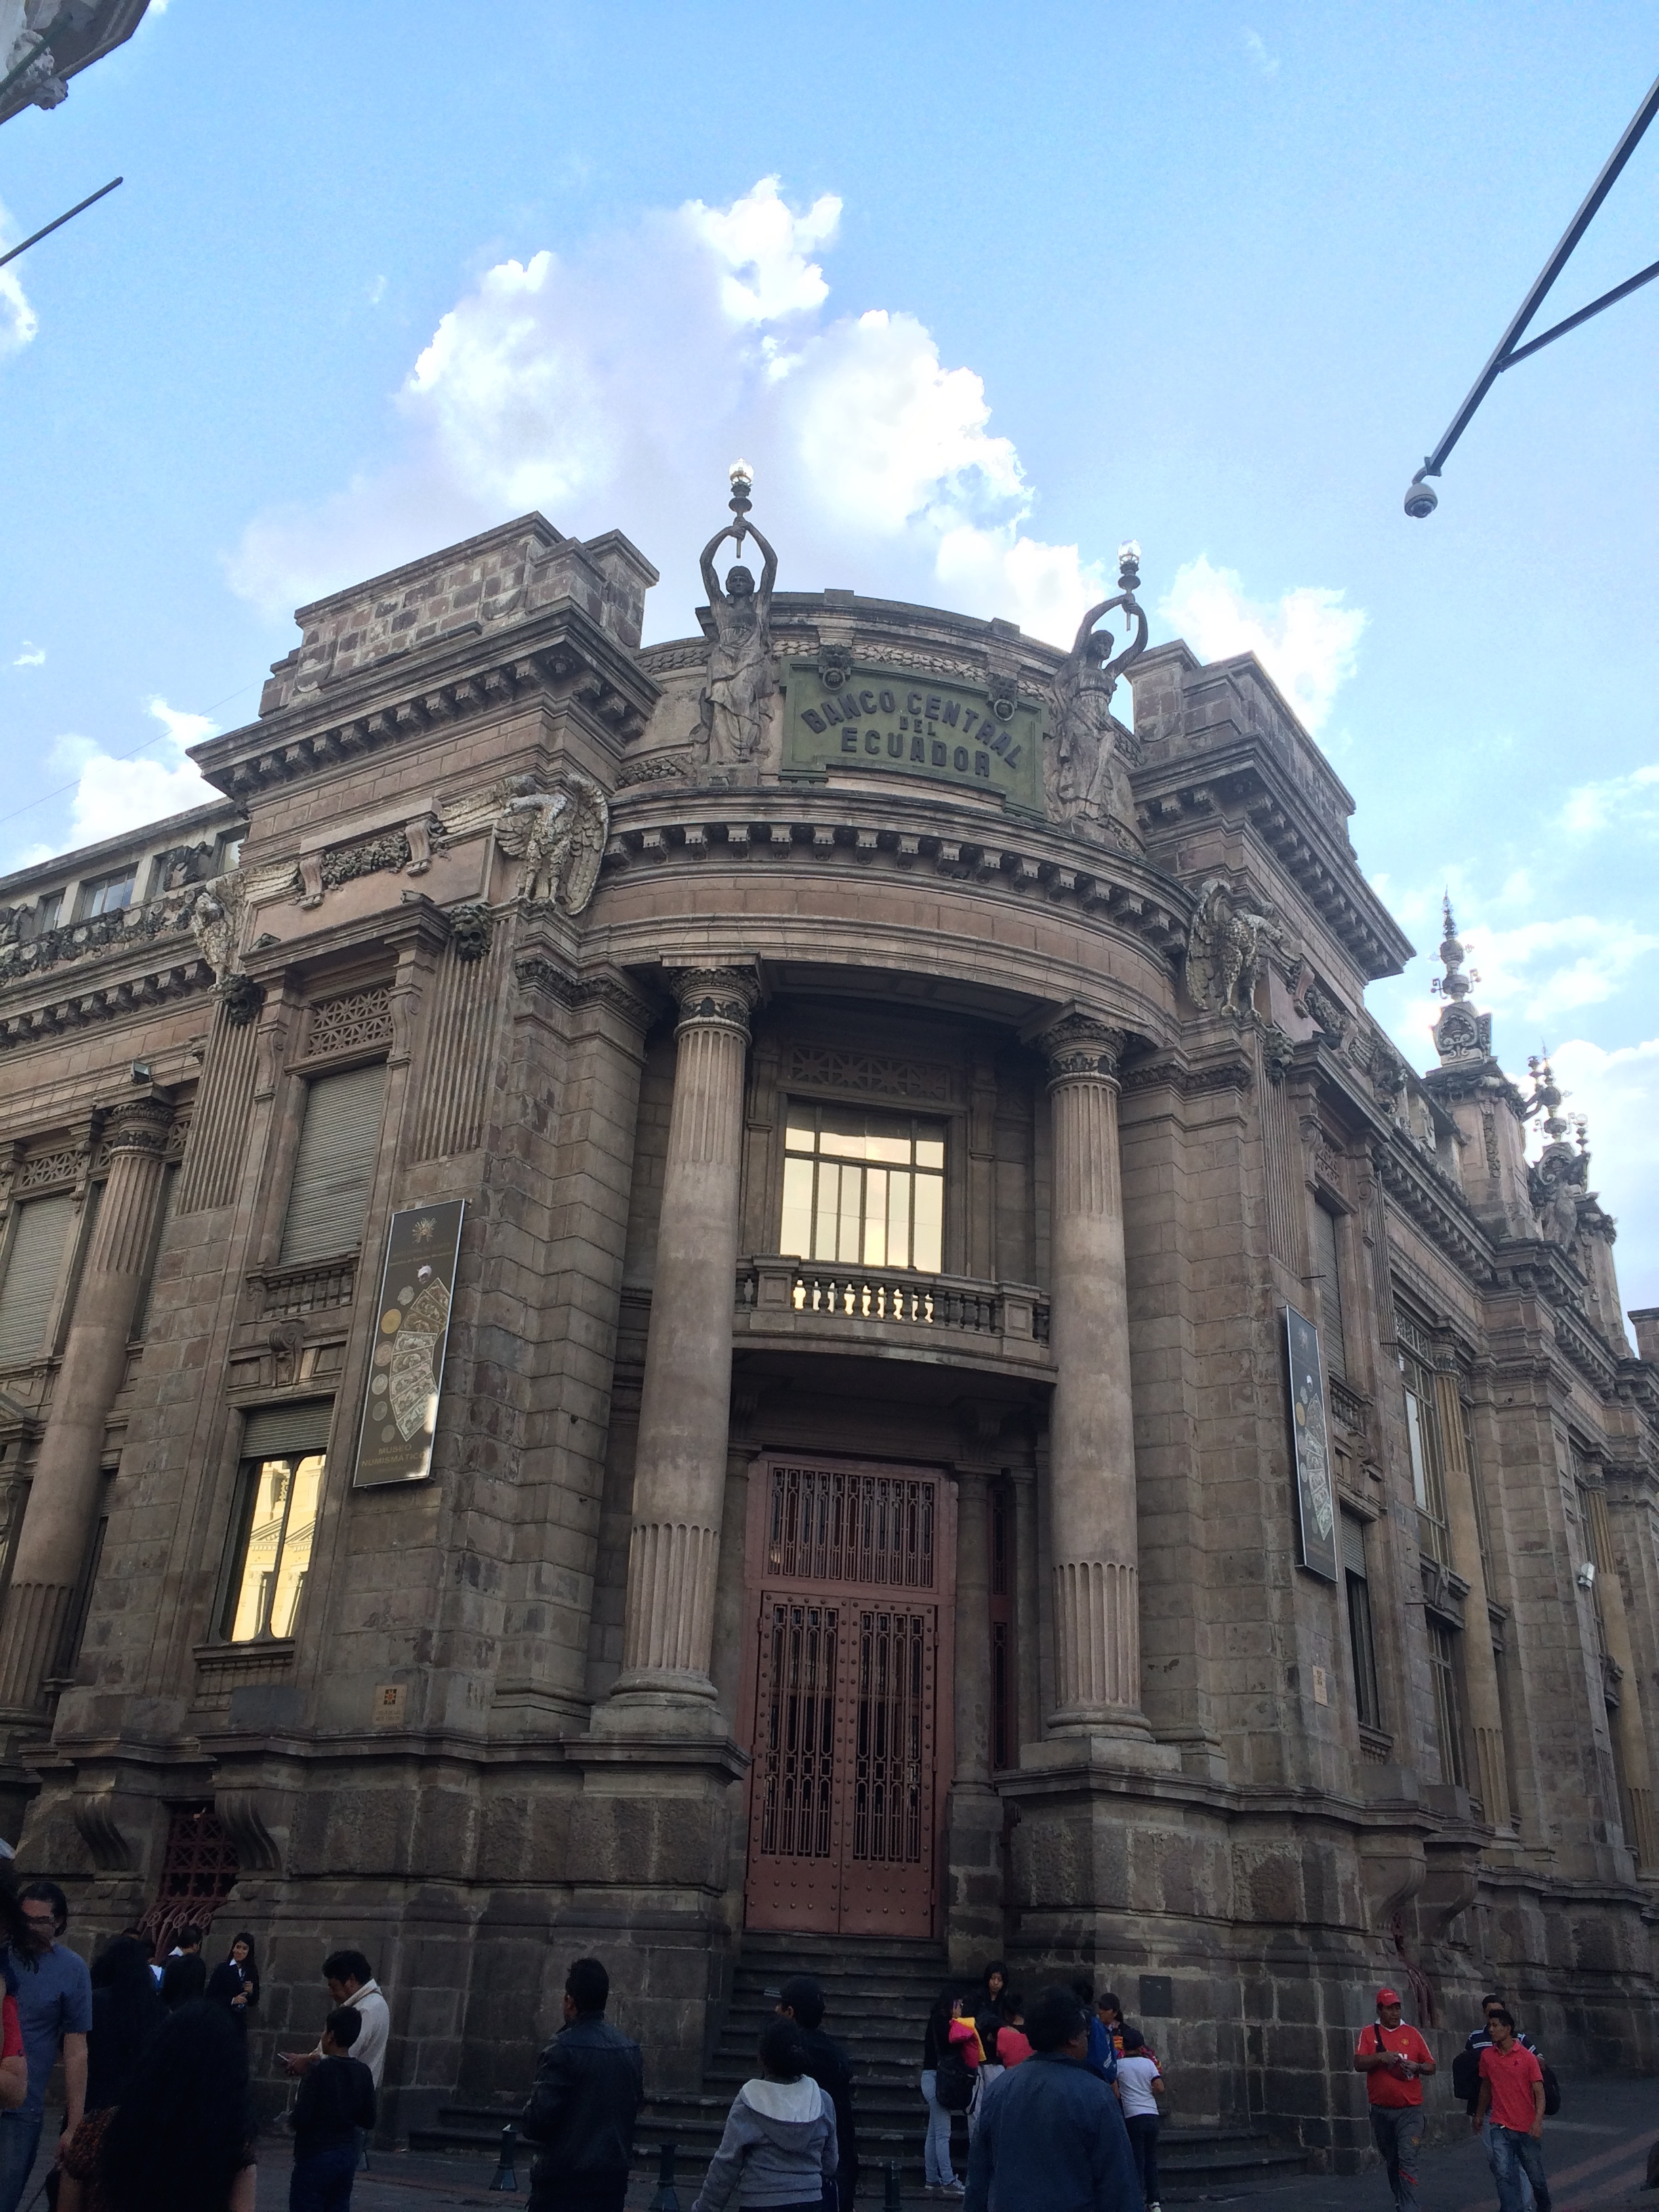 Central Bank of Ecuador in Quito